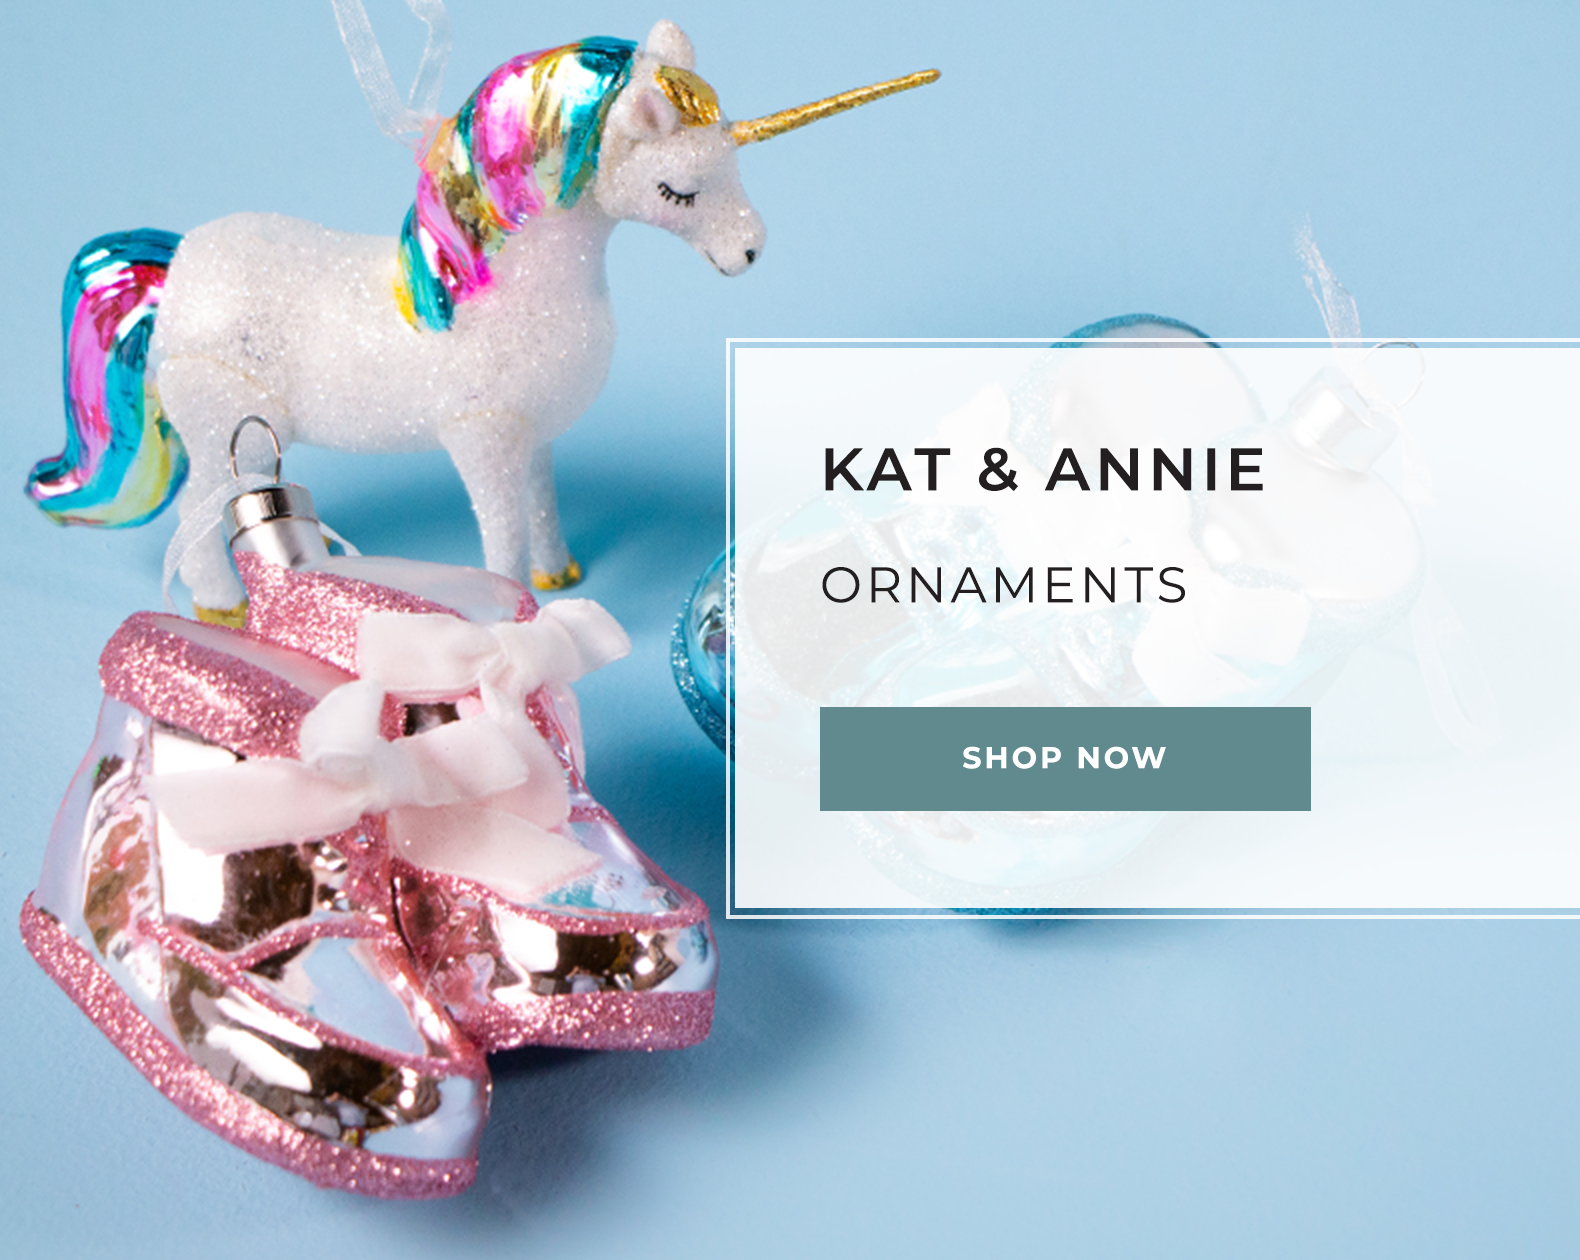 Kat and Annie - Ornaments